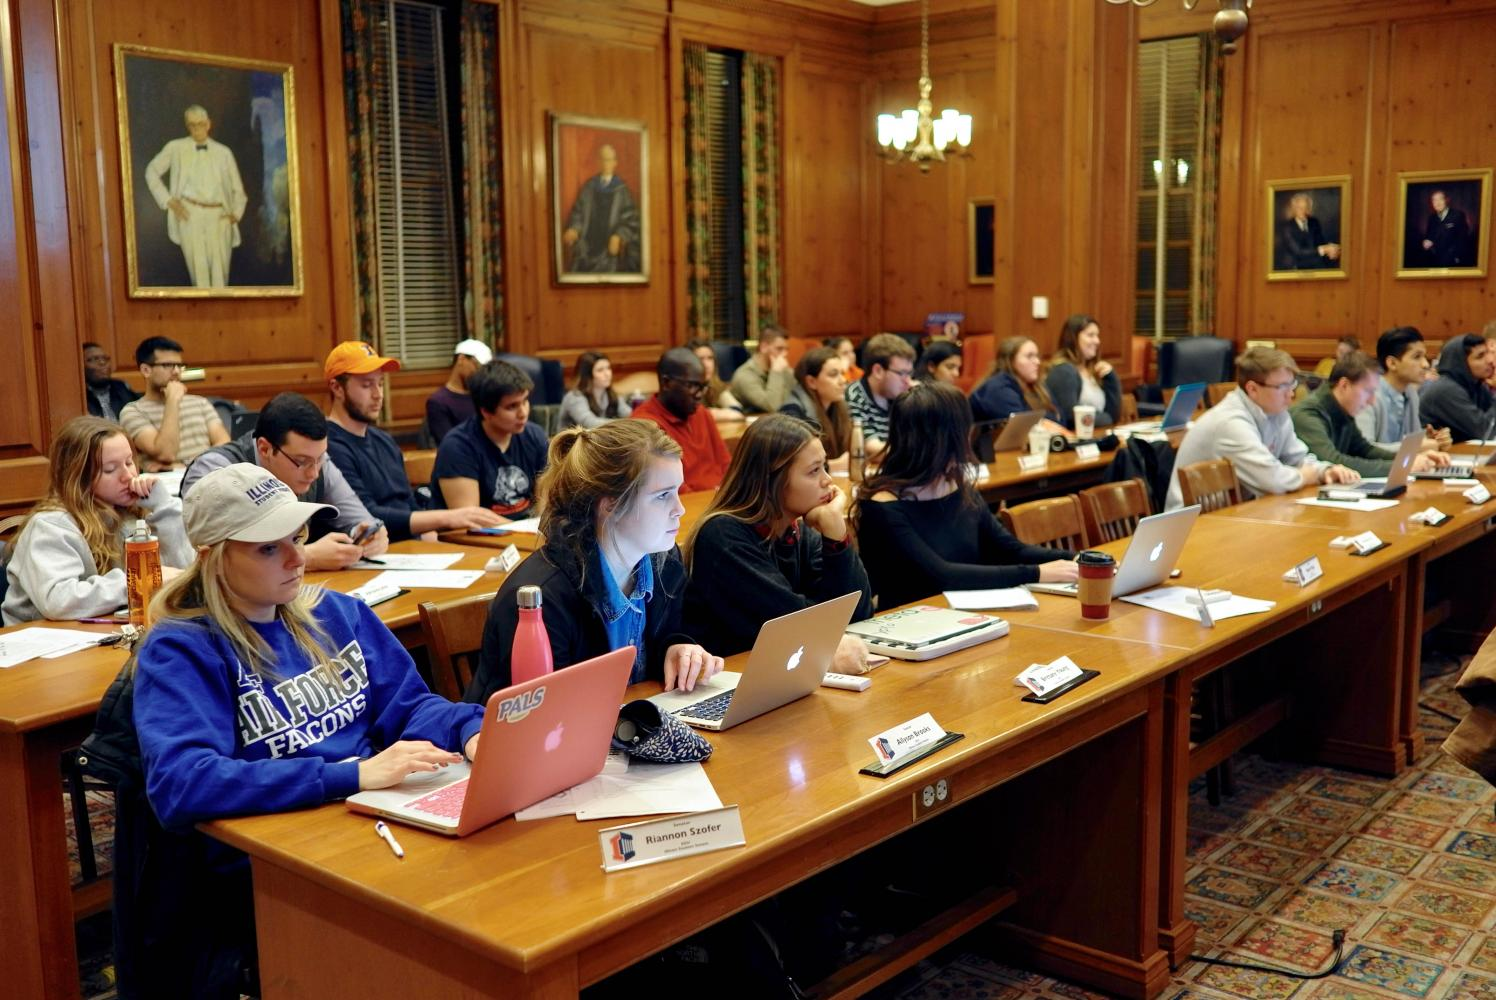 The Illinois Student Government had its first meeting of the semester last night. Among the discussions was a recommendation to support the use of medical marijuana in University Housing.